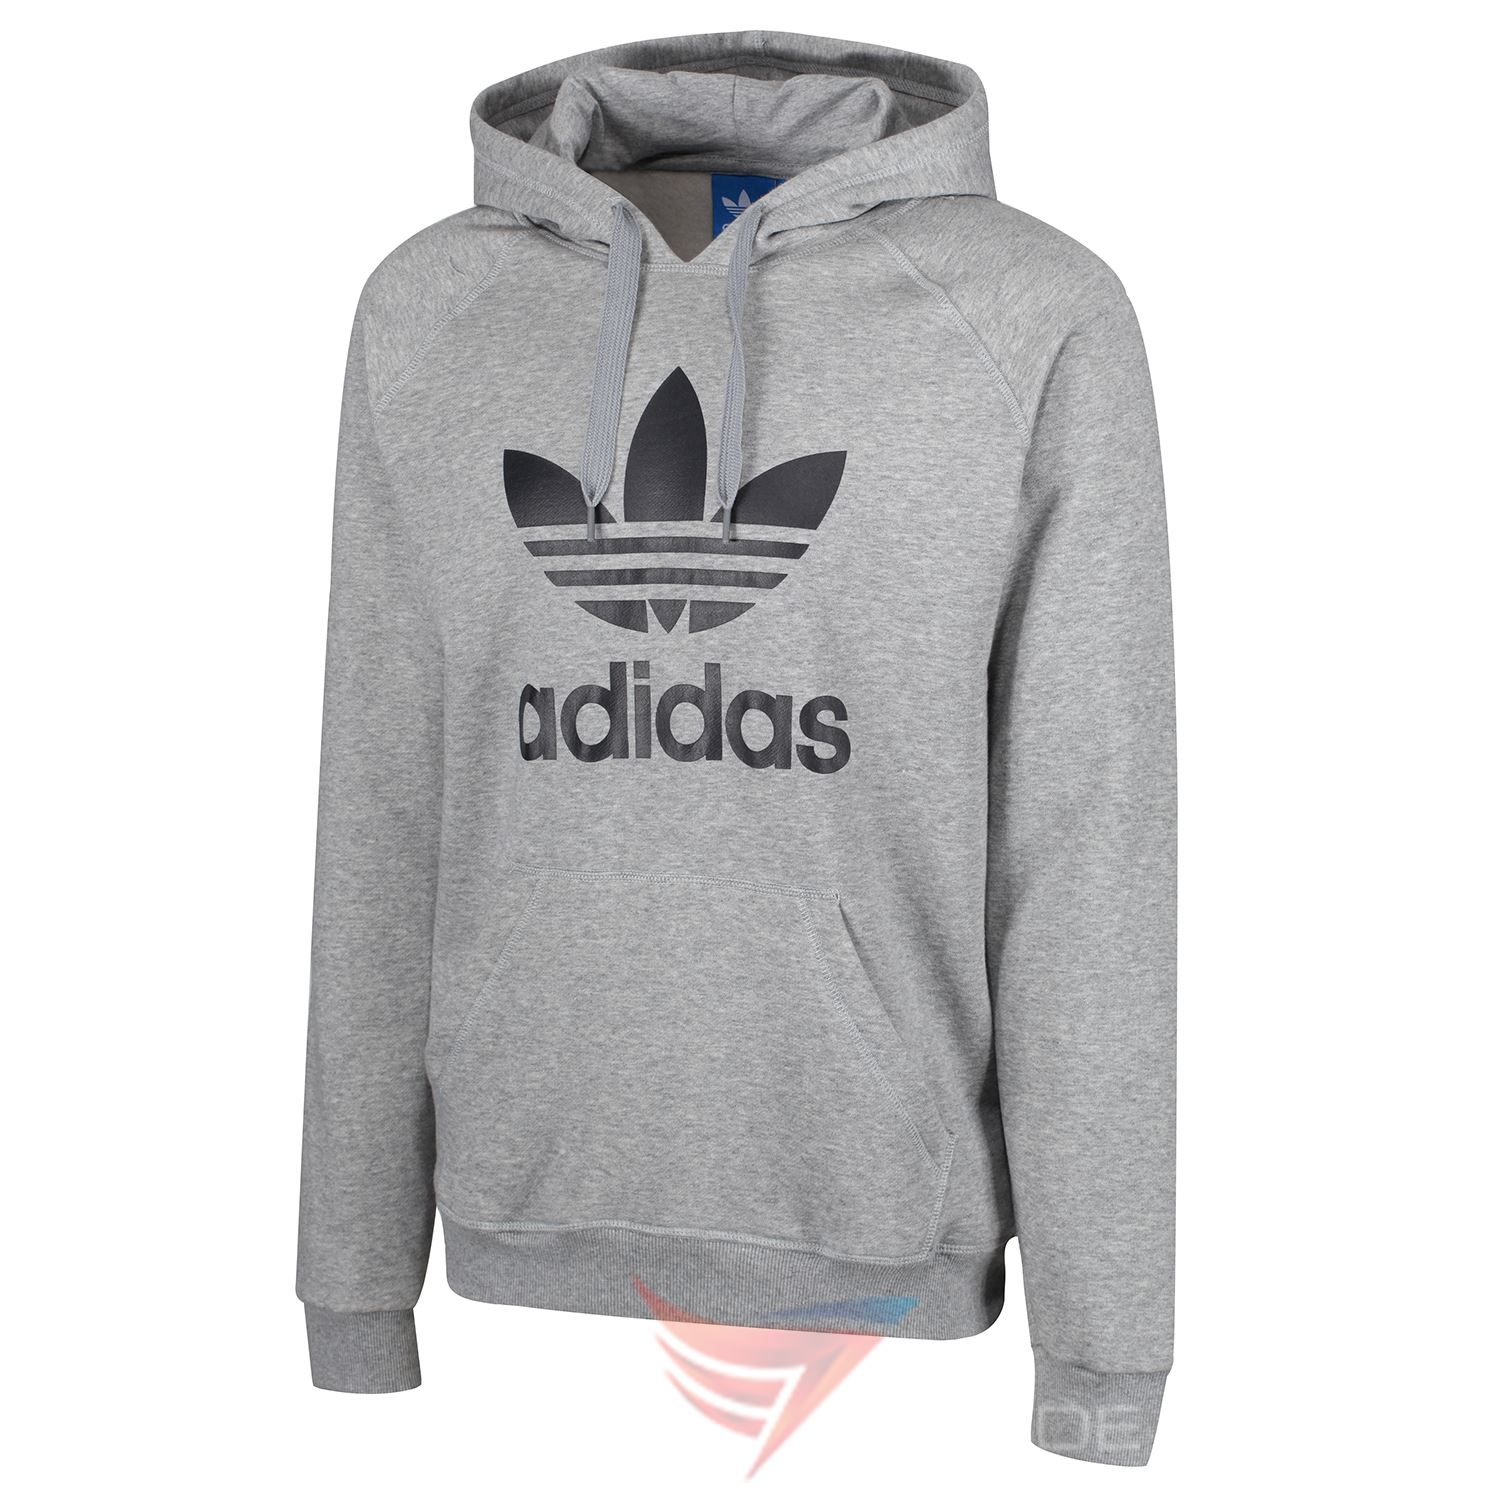 adidas ORIGINALS TREFOIL HOODIE BLUE NAVY BLACK GREY PULLOVER HOODED S M L XL